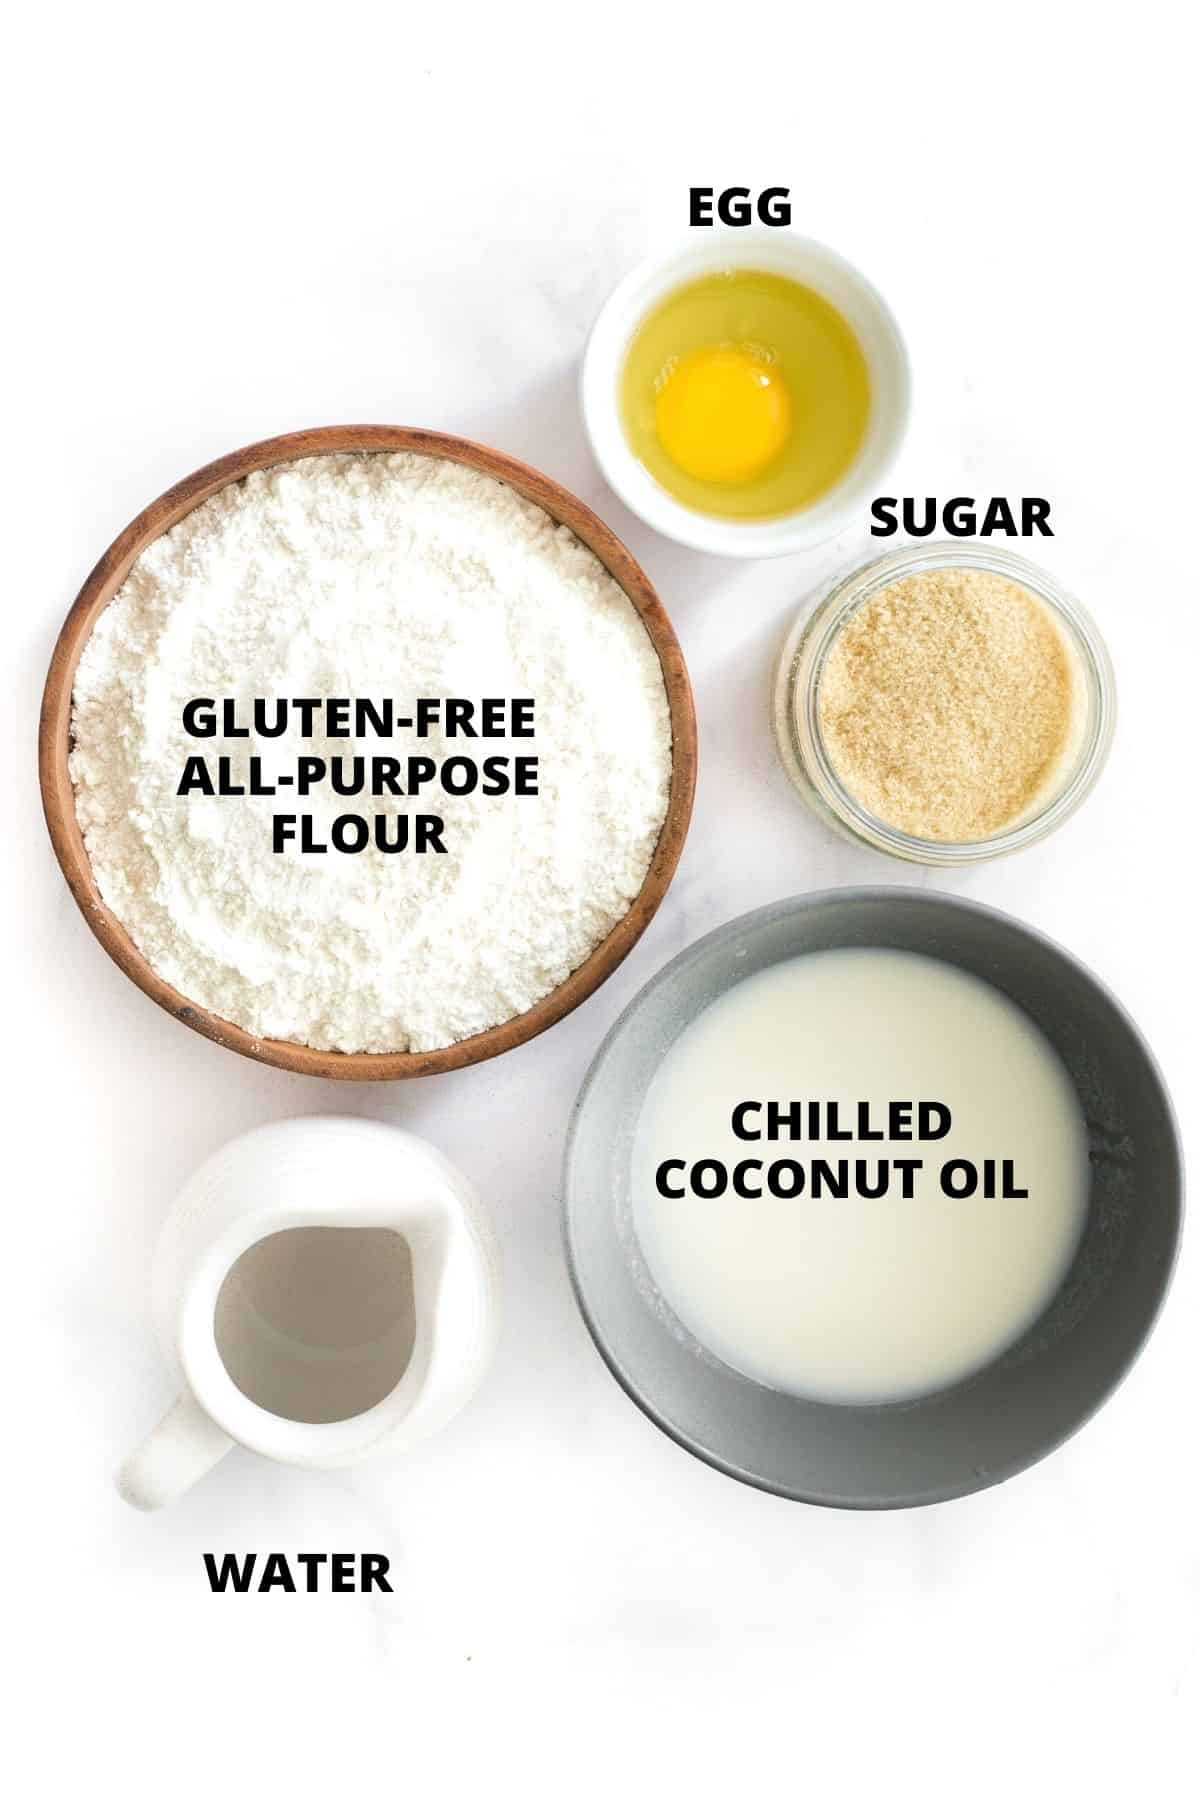 Ingredients for gluten-free pie crust laid out and labeled.